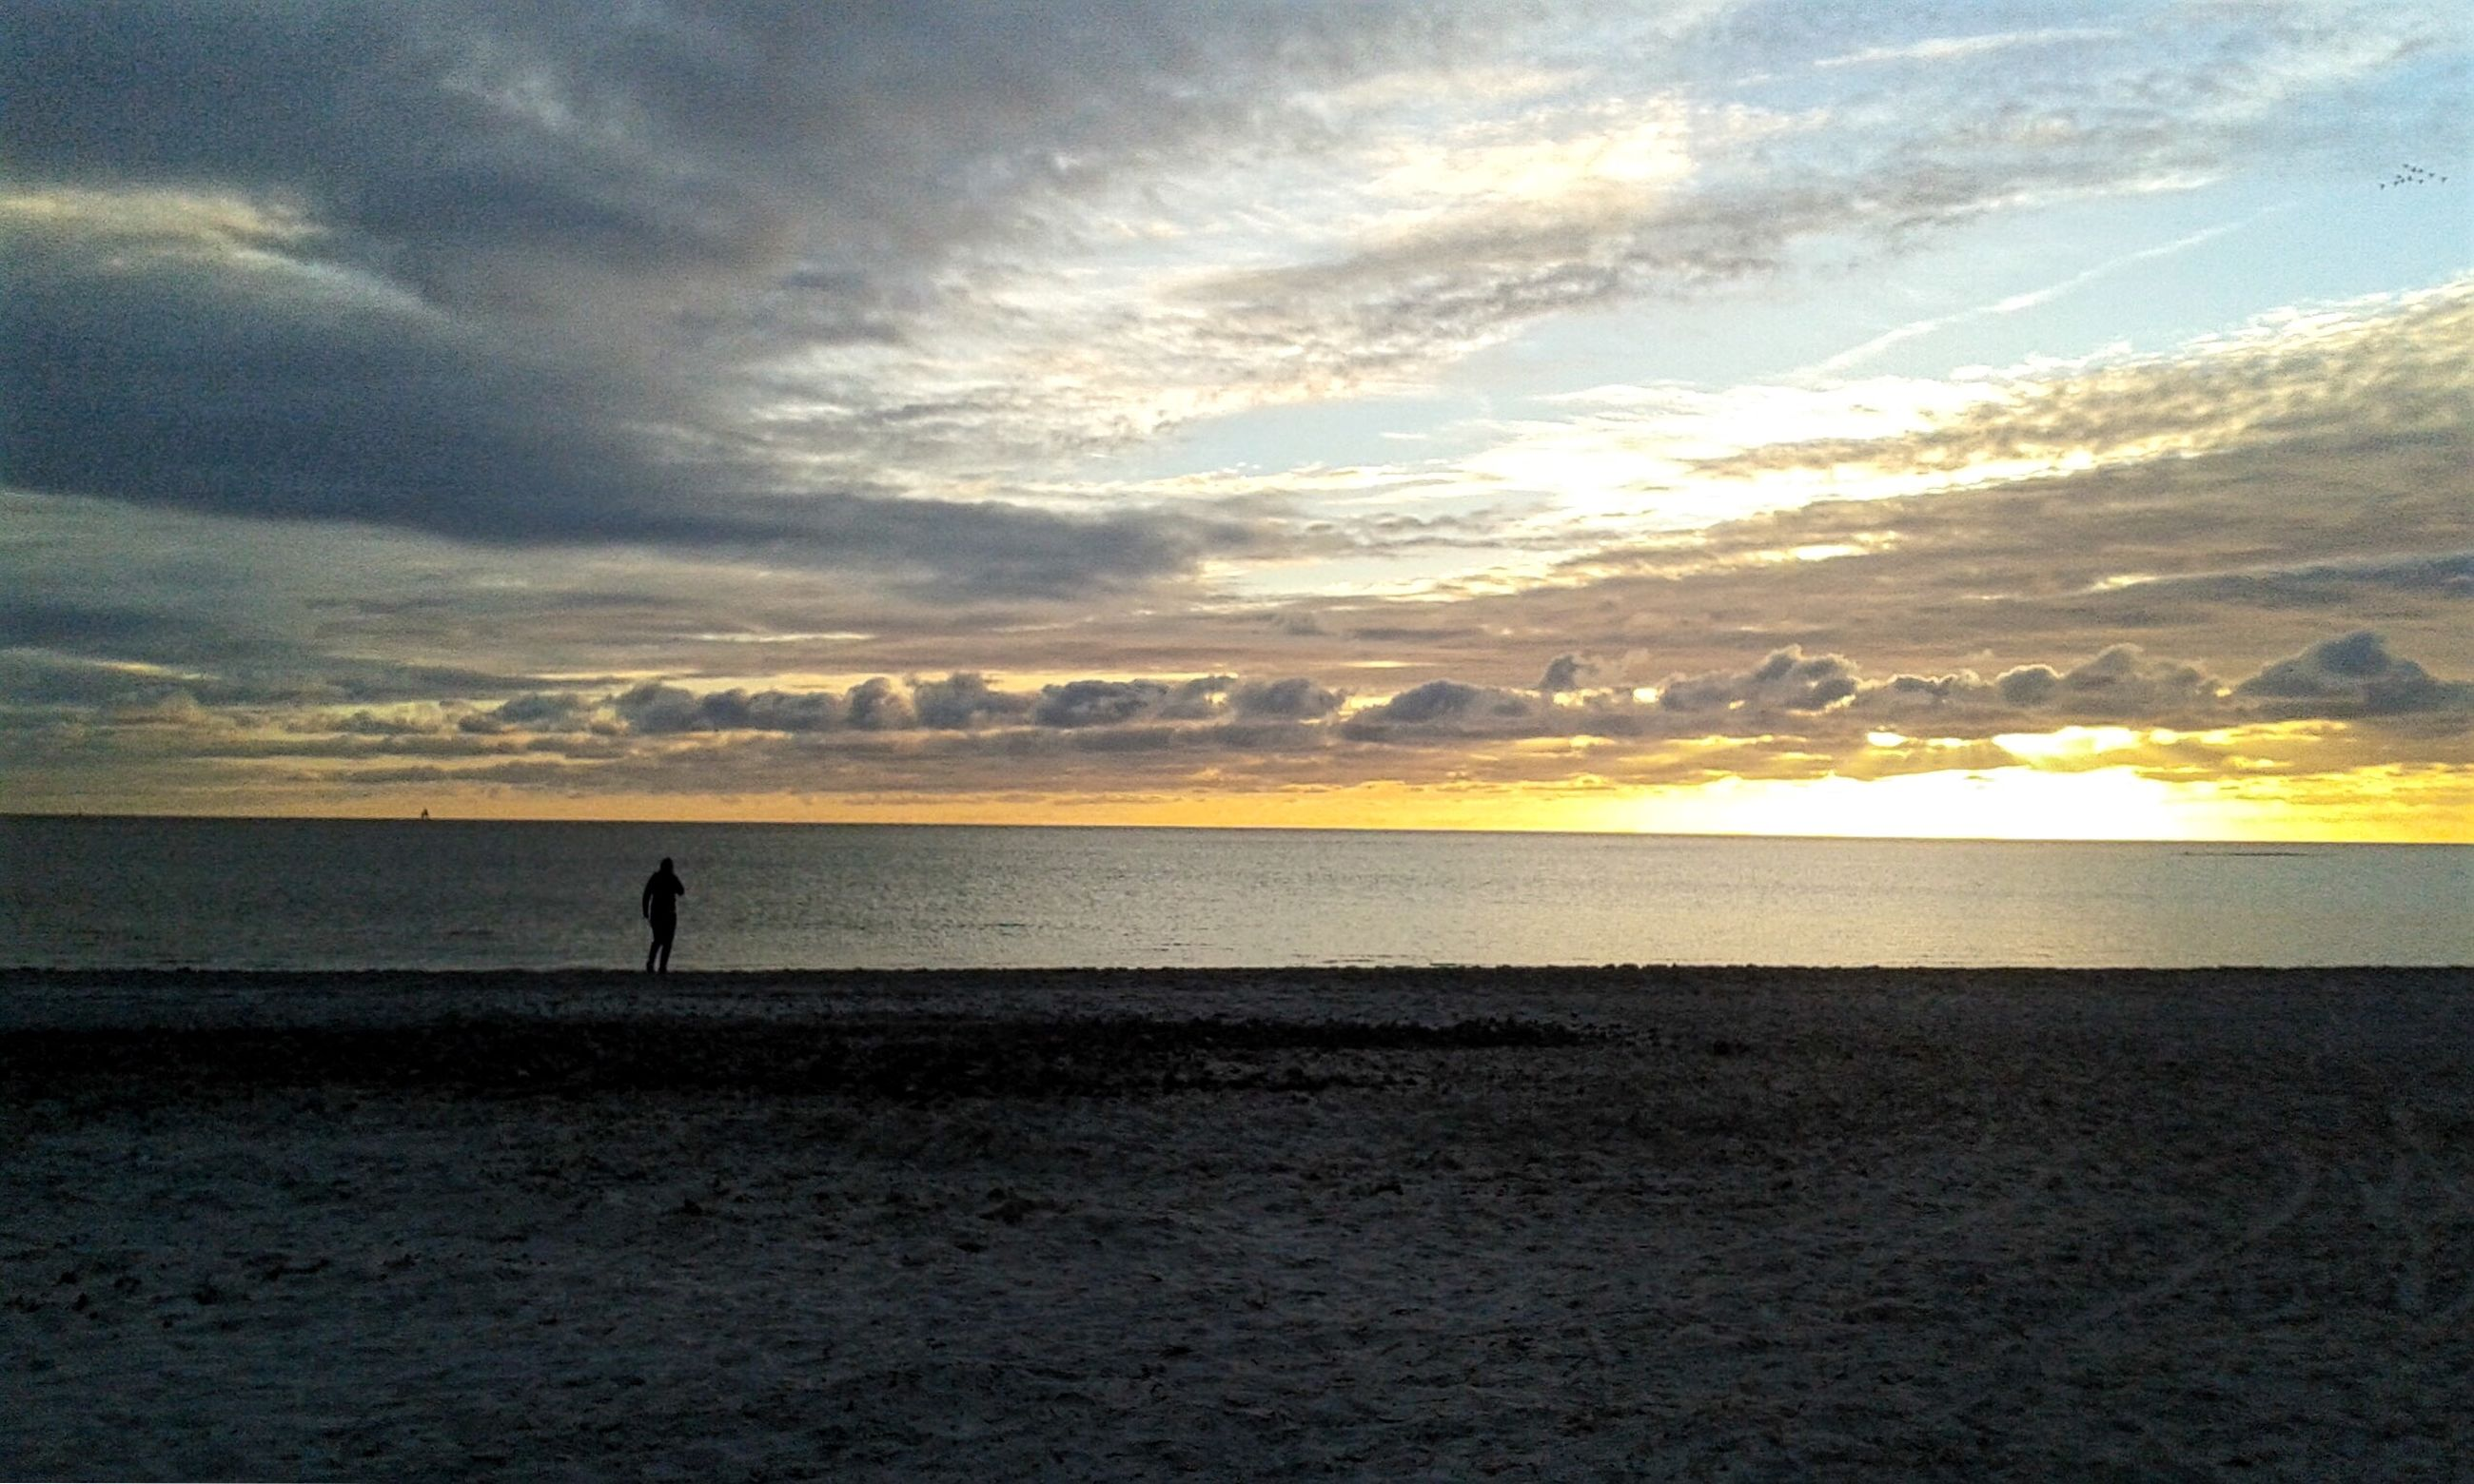 sea, horizon over water, sunset, water, sky, silhouette, beach, scenics, tranquil scene, tranquility, beauty in nature, cloud - sky, shore, nature, idyllic, cloud, unrecognizable person, leisure activity